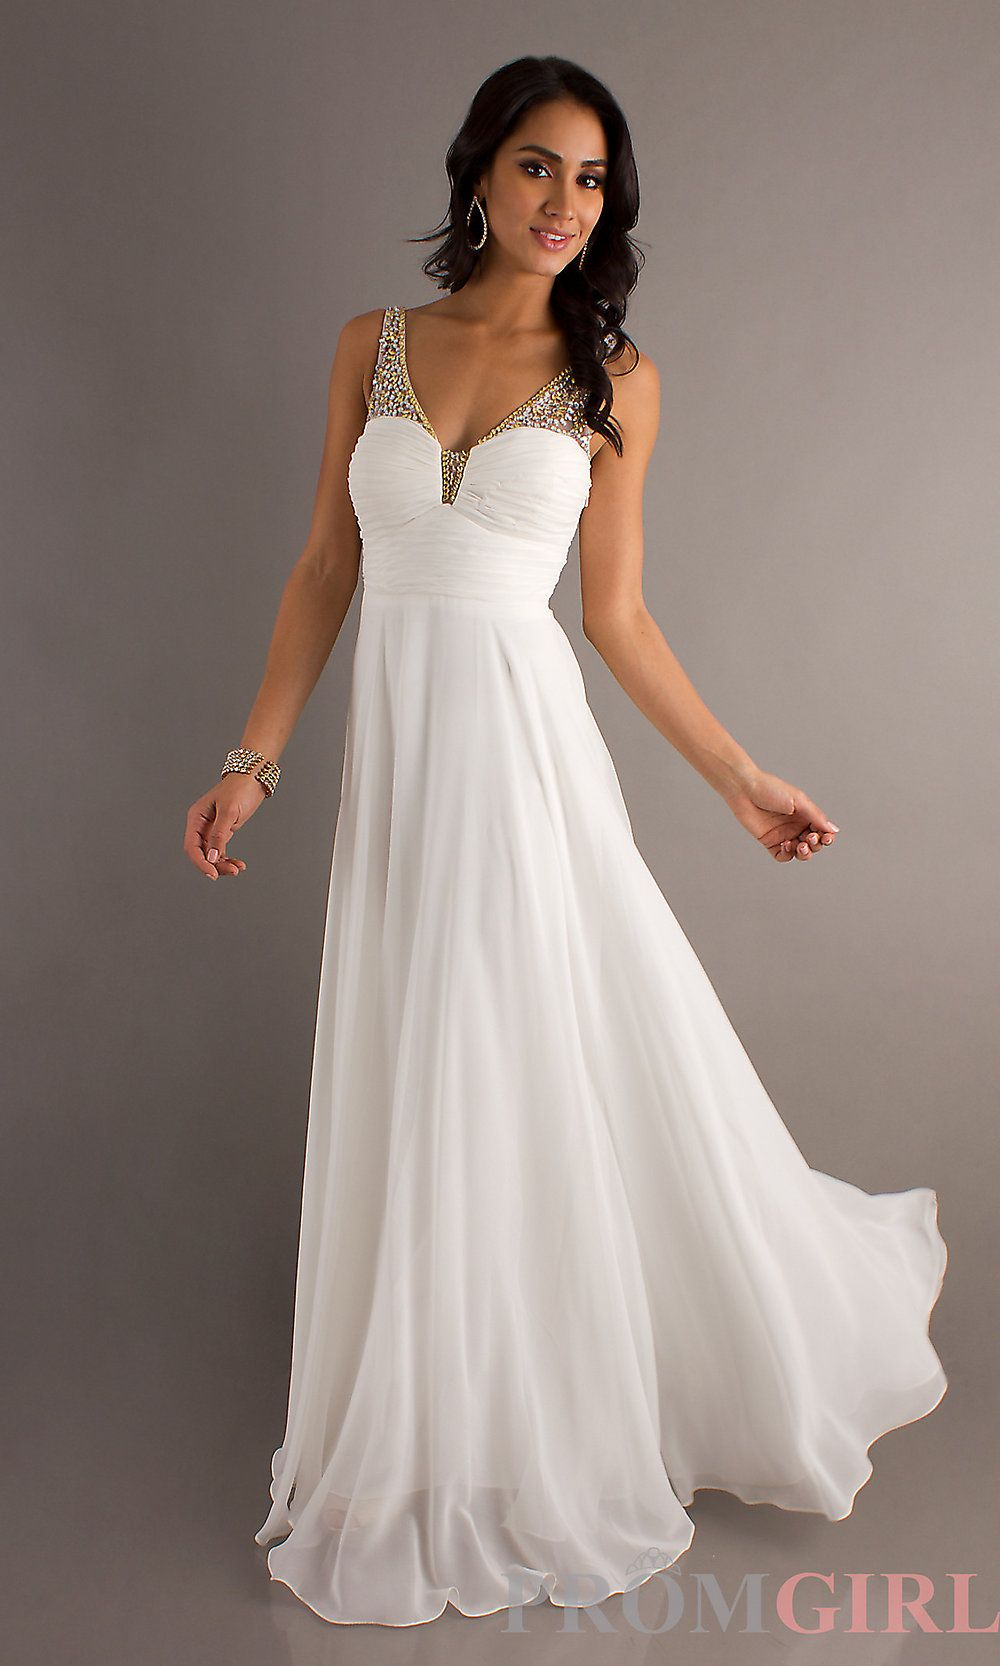 Long Ivory Dress | Dress images